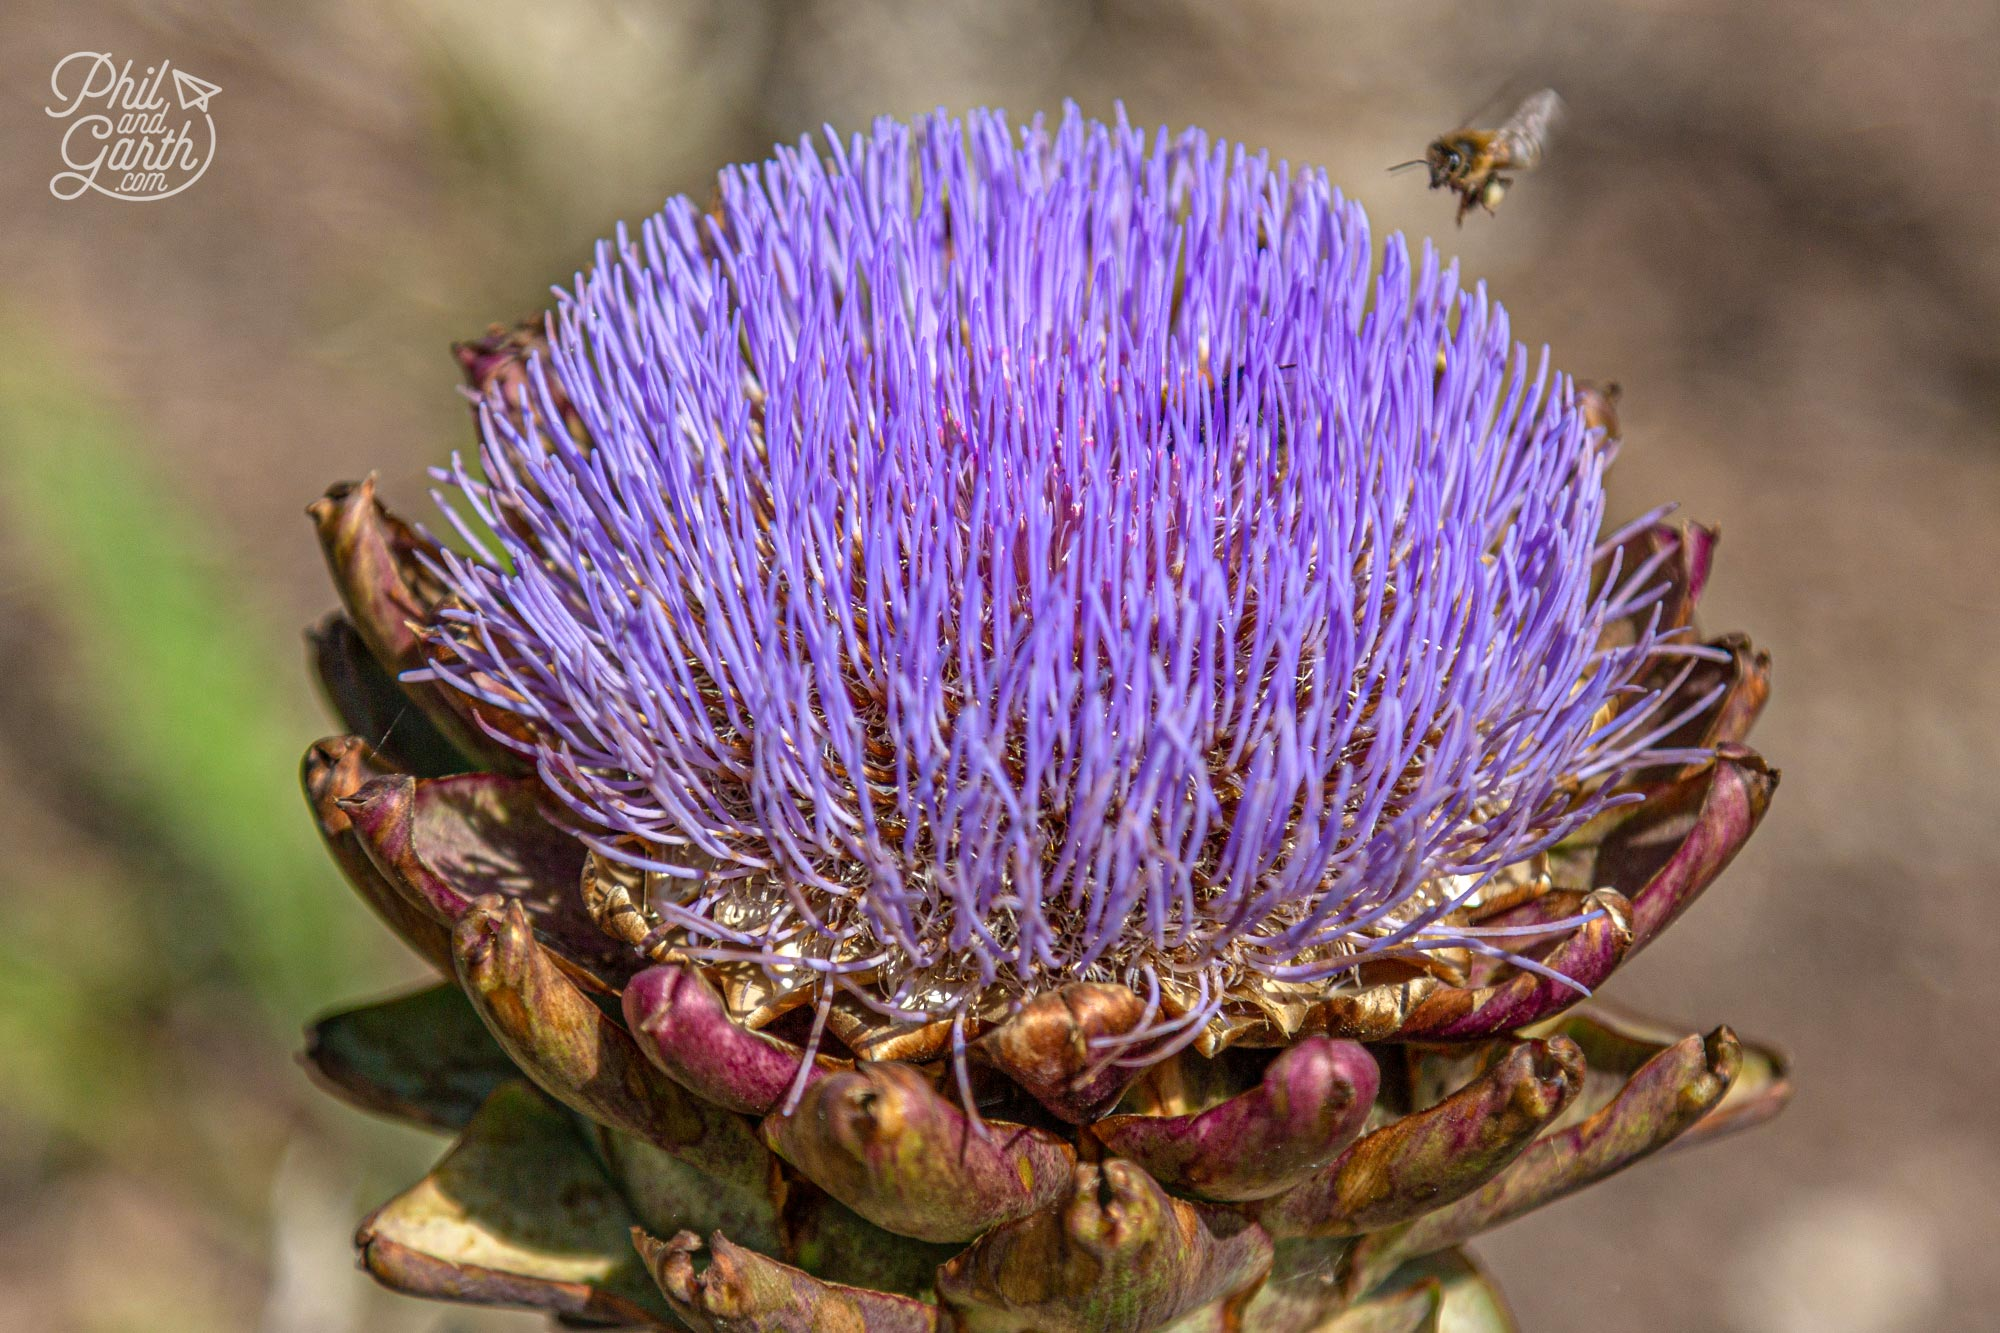 The bees loved these globe artichokes